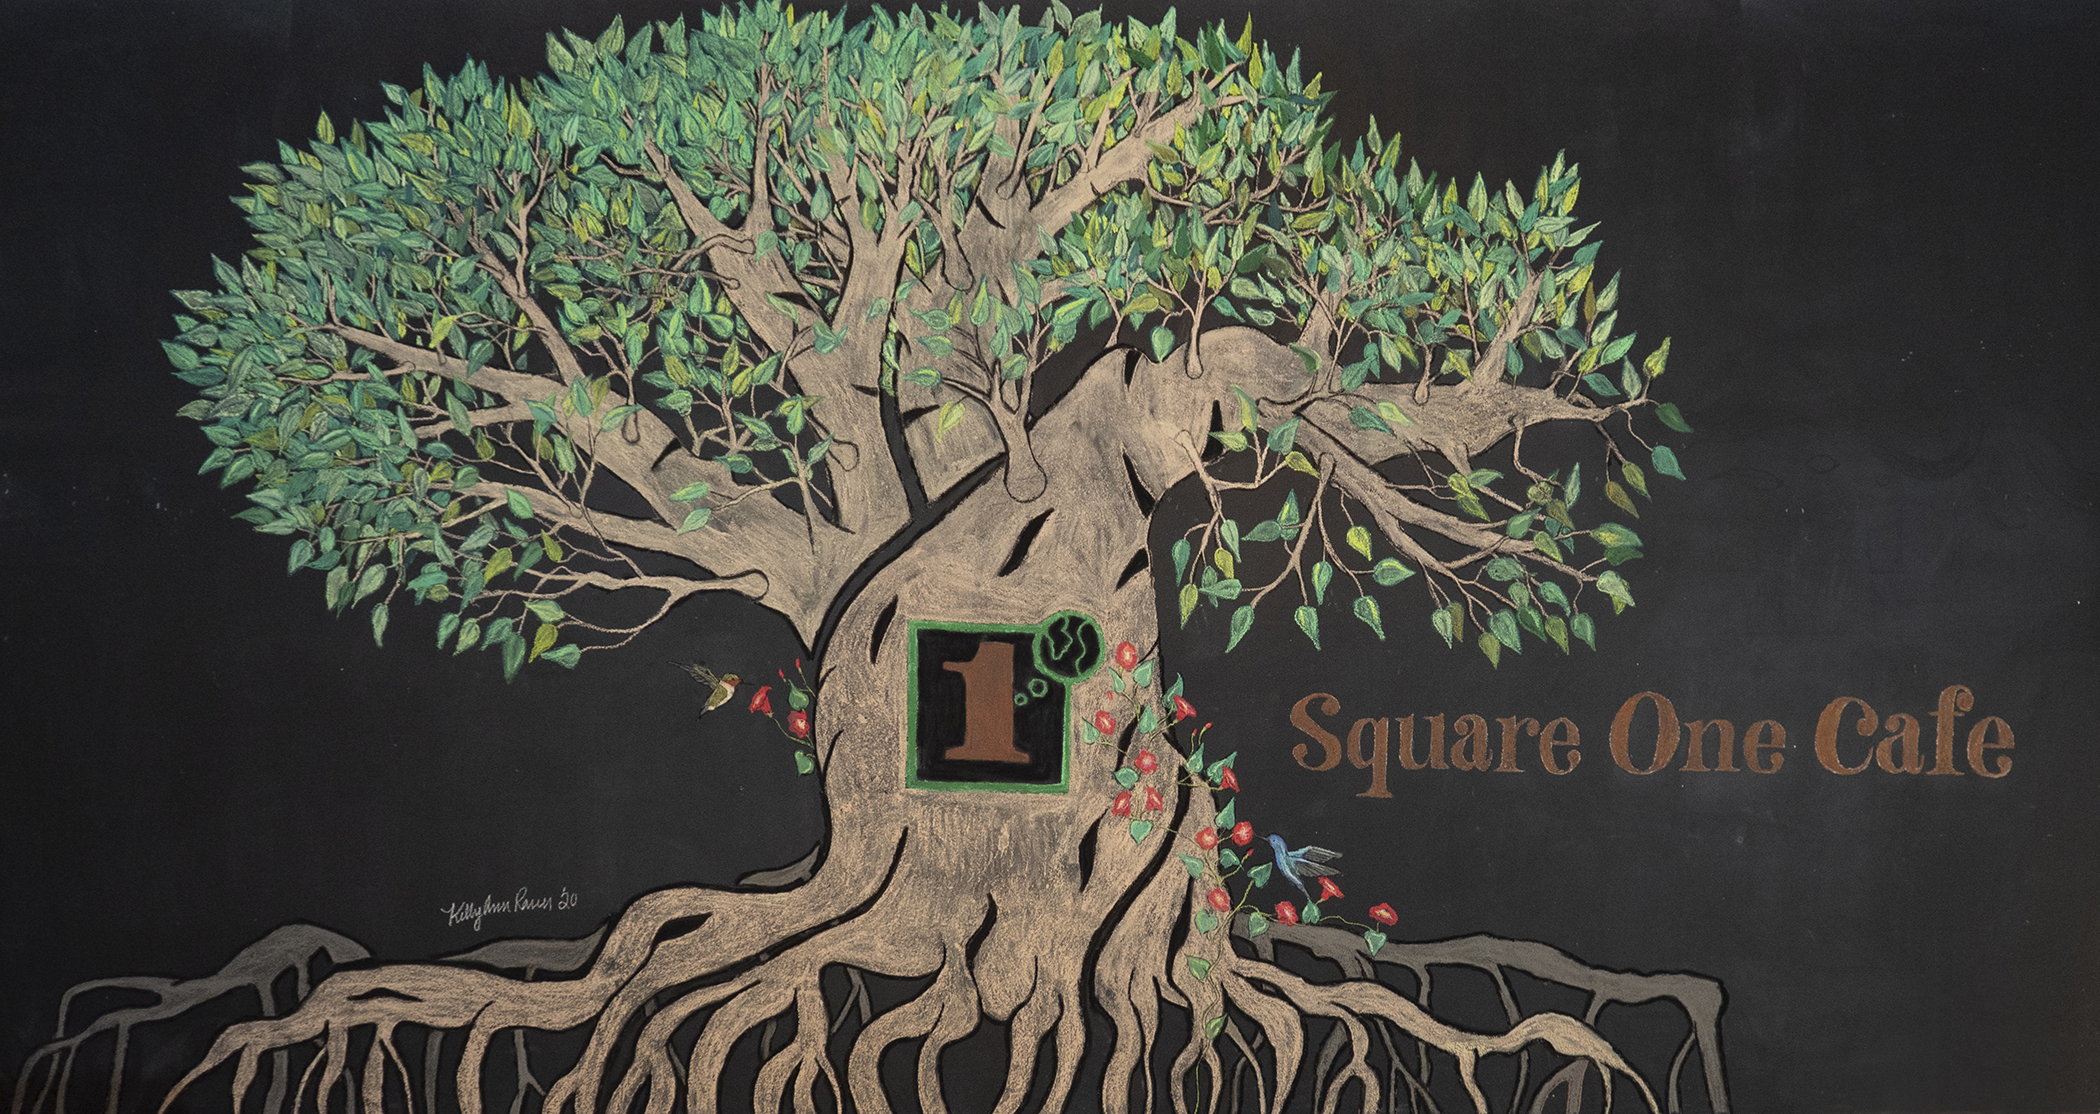 Square One Cafe Mural